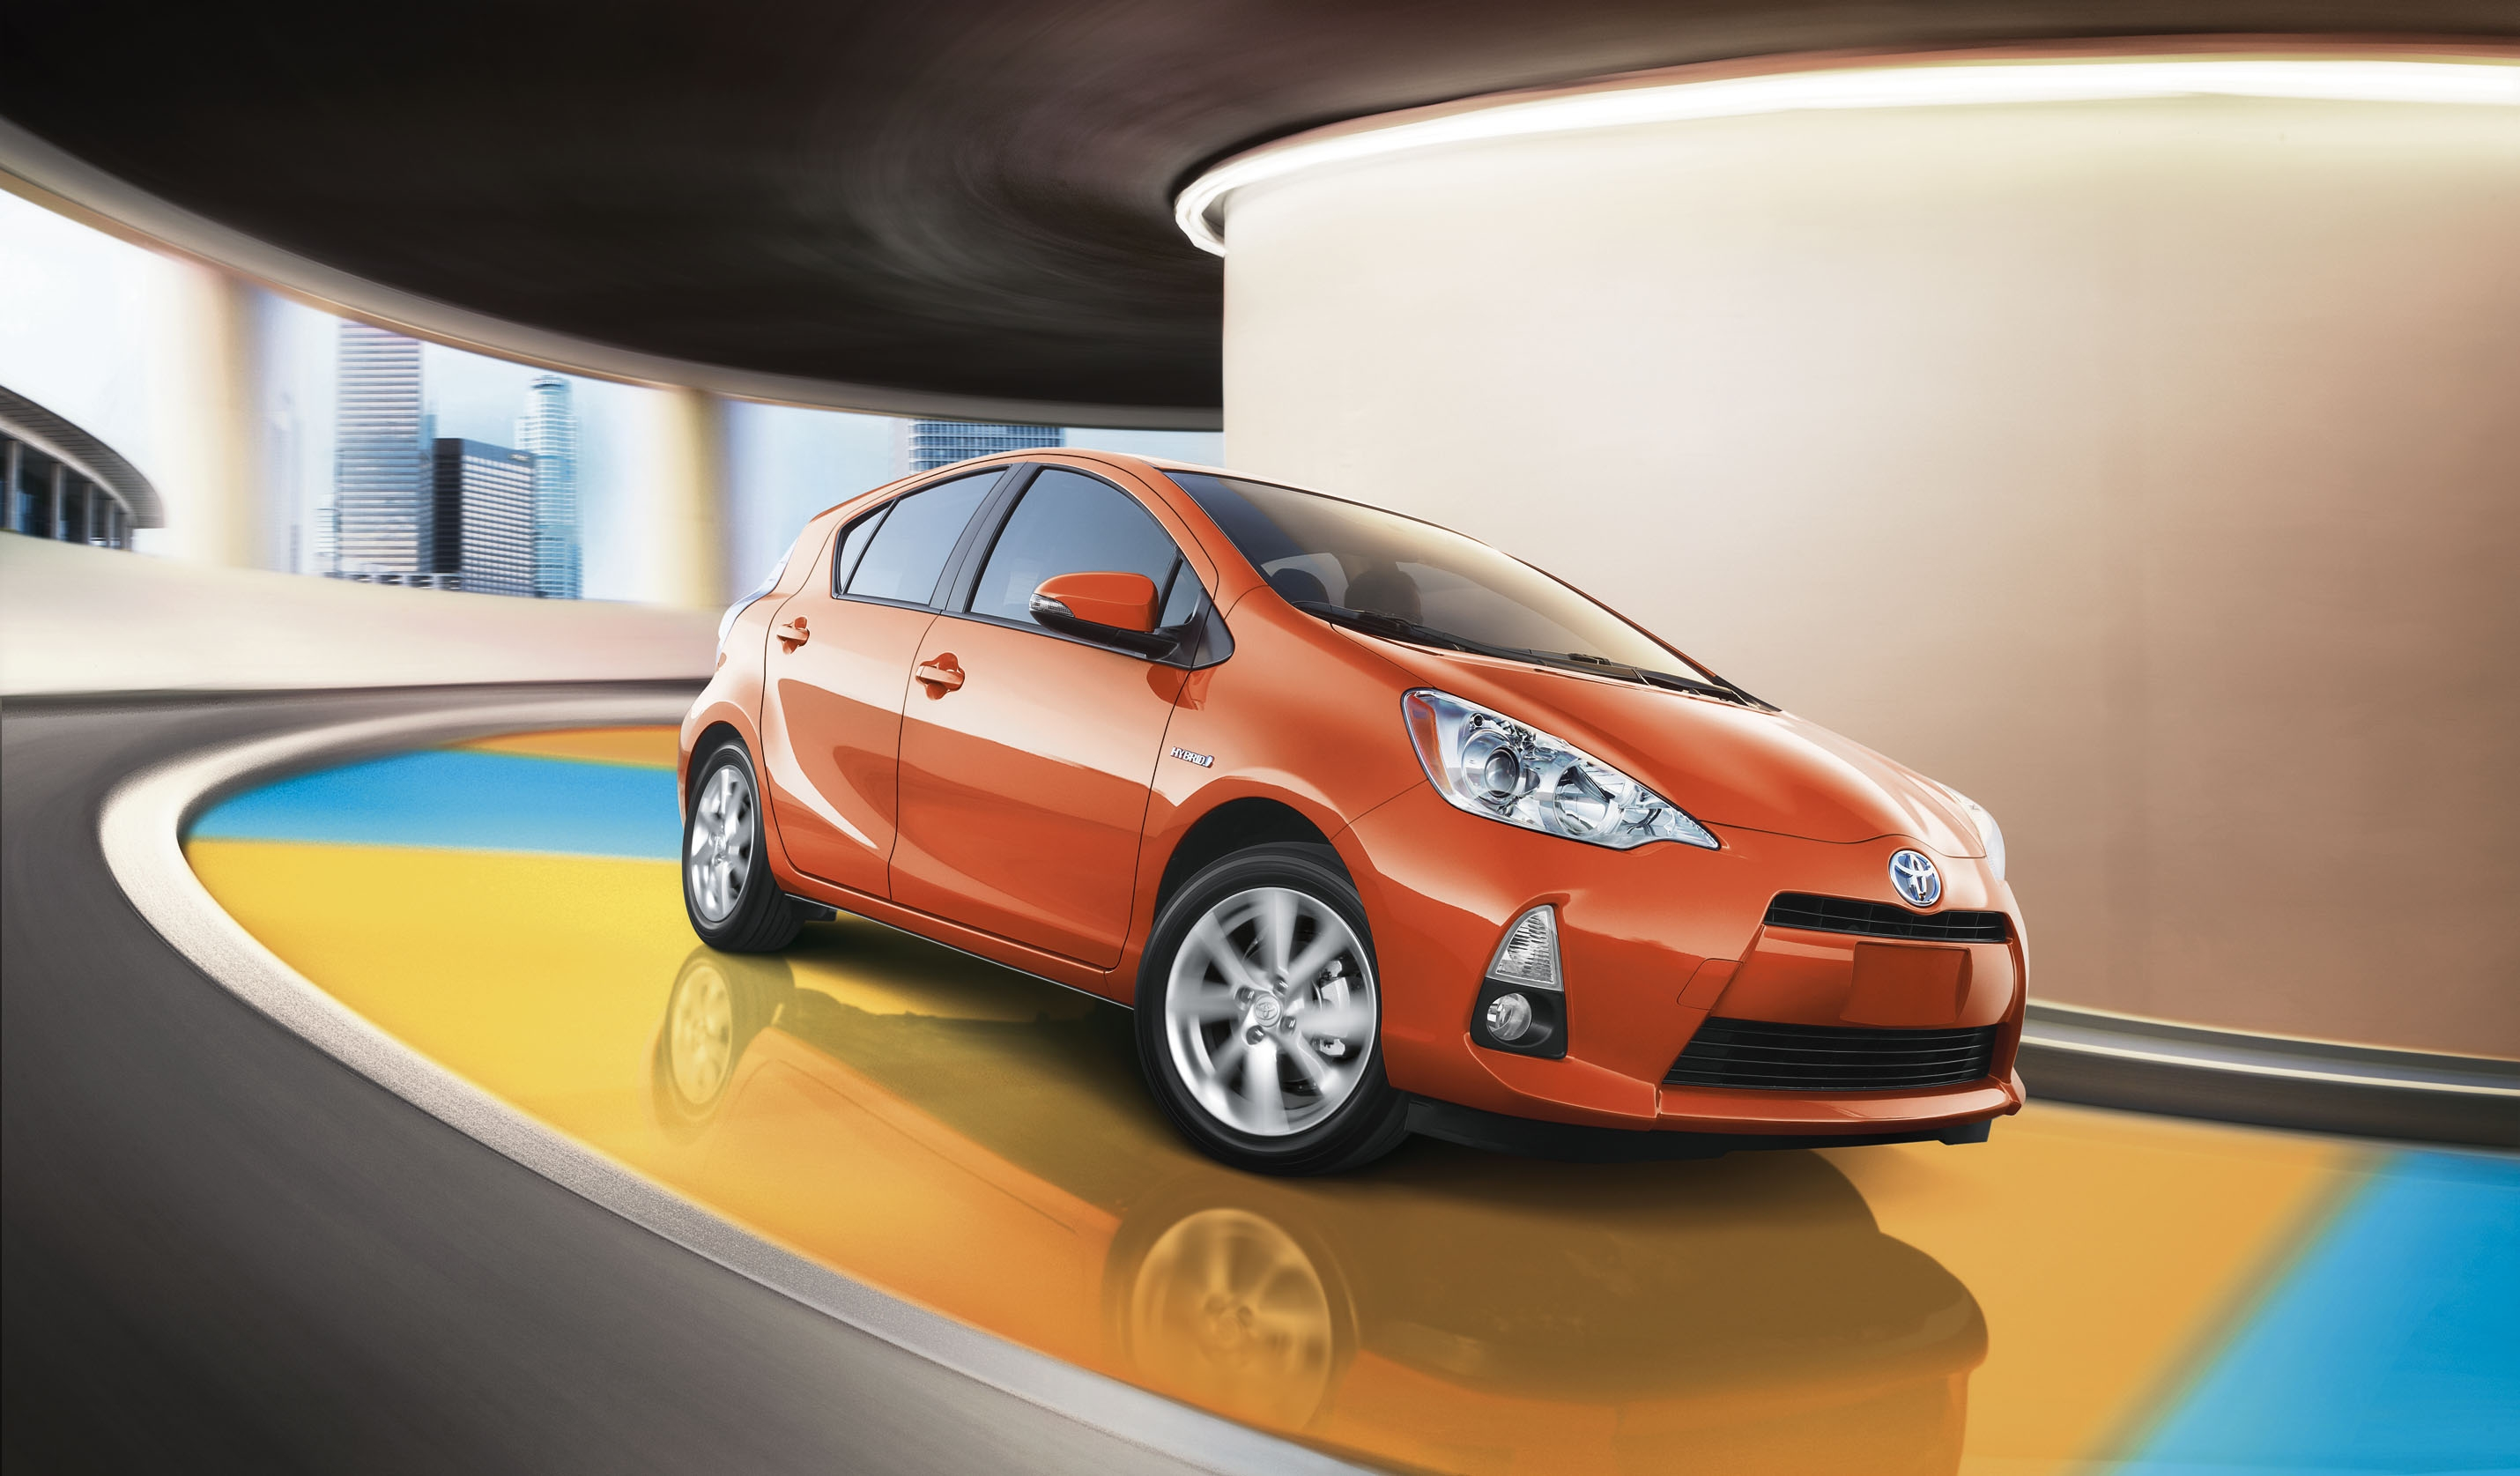 For College Graduates, Southeast Toyota Finance Just Made The Car Buying  Experience A Little Greener. The Prius C, A Hot Selling Choice For  Trend Setting ...